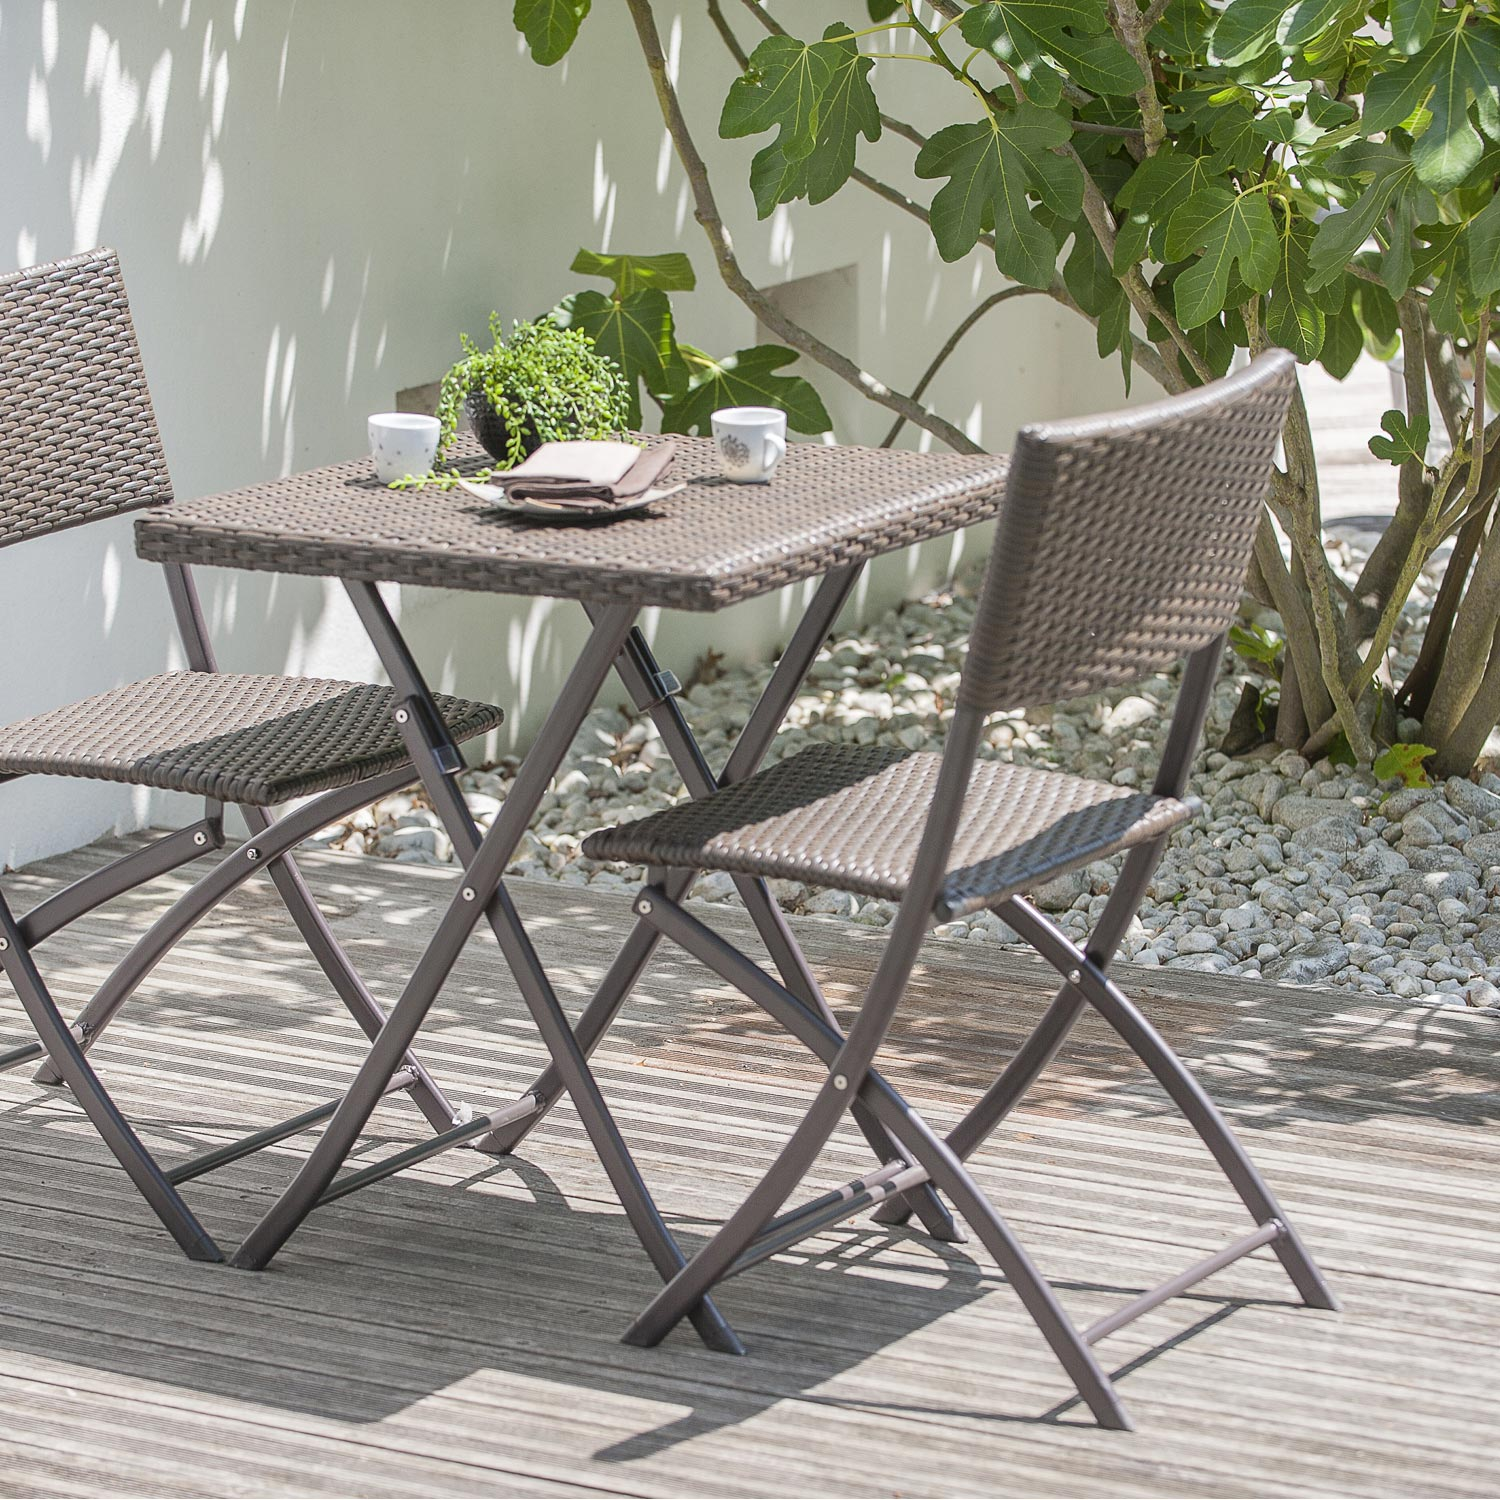 Salon de jardin r sine tress e marron 1 table gueridon 2 - Salon de jardin en resine leroy merlin ...